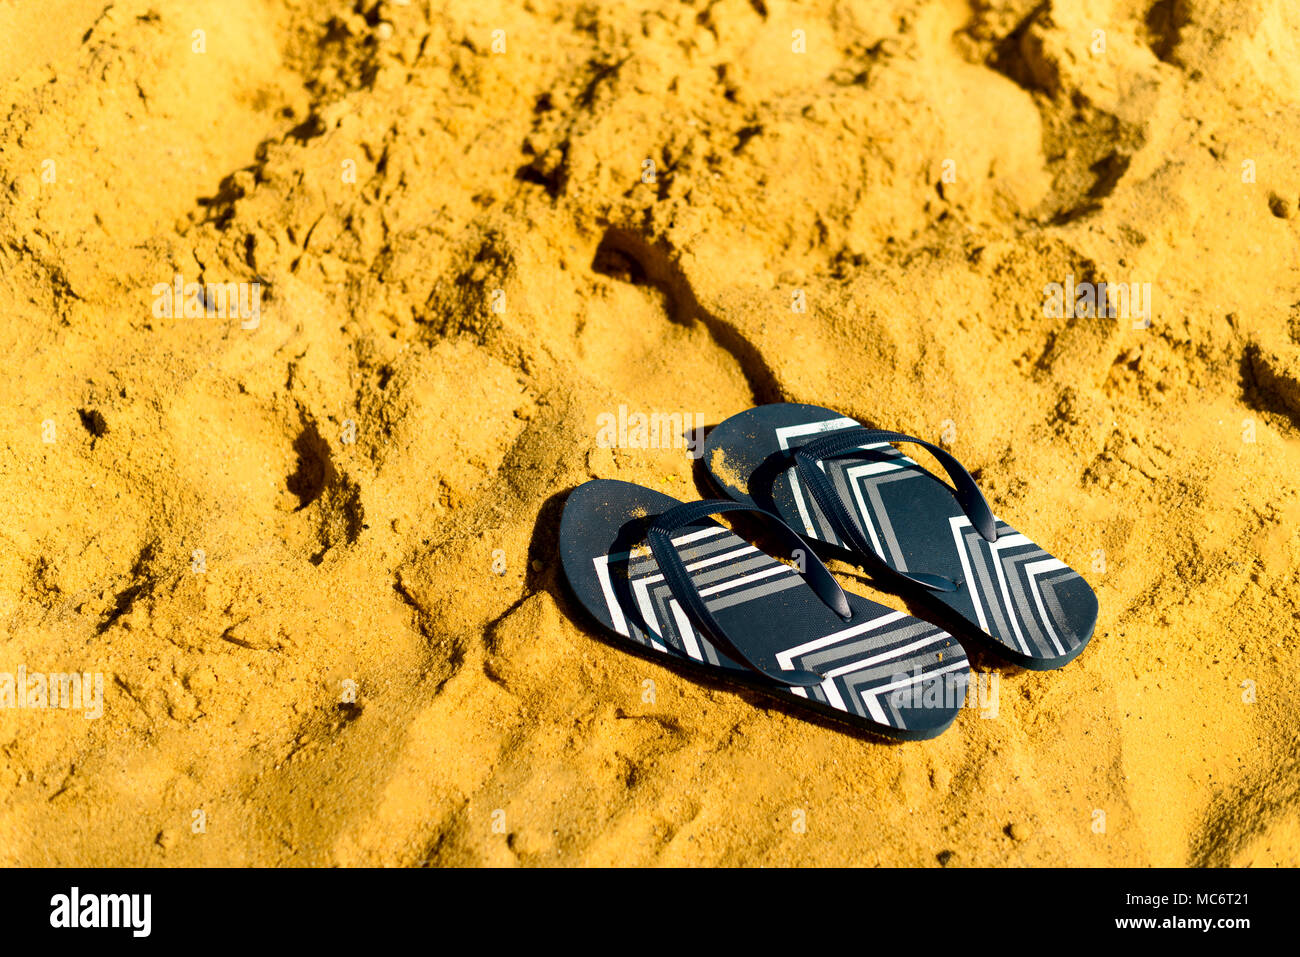 9b54651c6be0 Summer slippers. Navy blue flip flop on yellow sand beach background. Copy  space